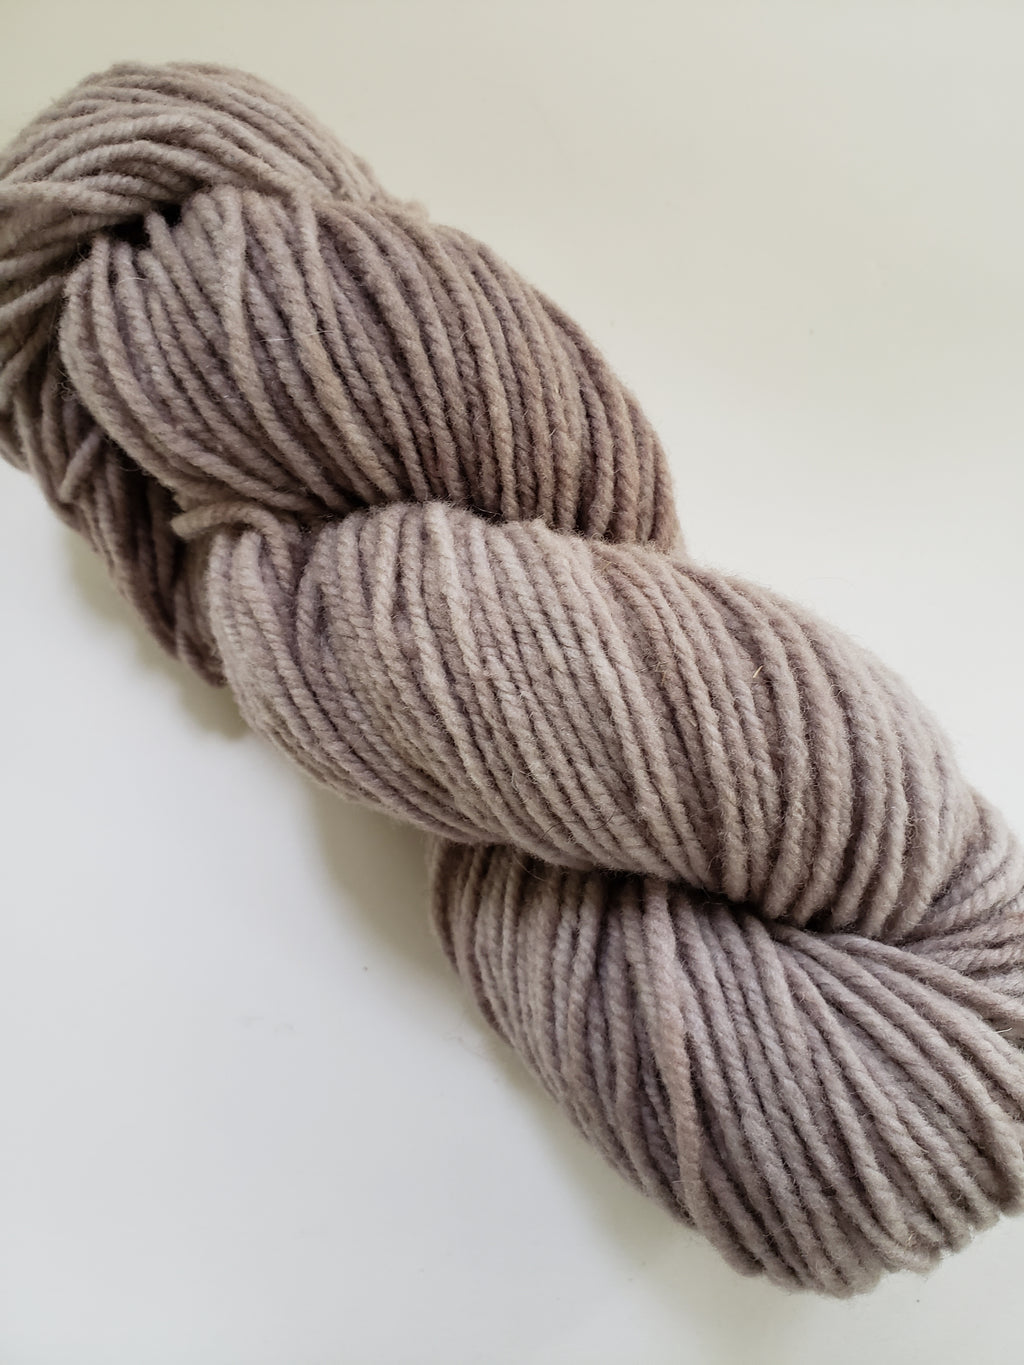 OATMEAL TAUPE - Wonder Woolen Fleece Artist Hand Dyed Yarn 4 ounces/115g